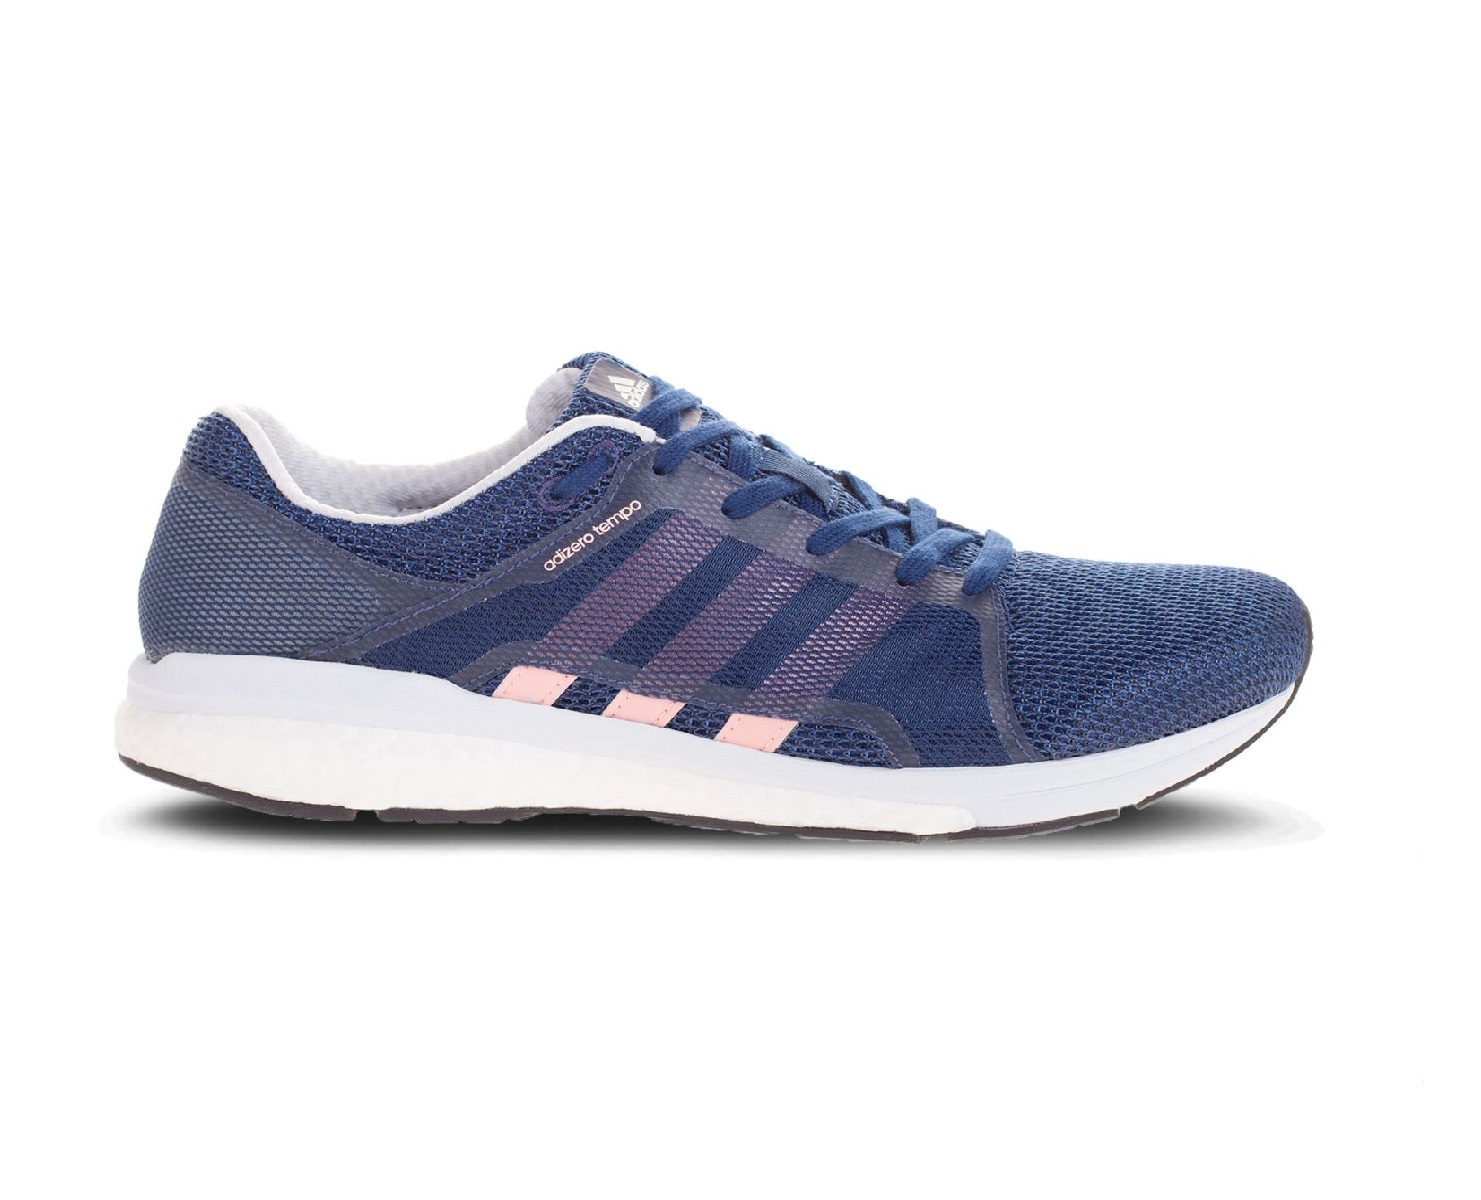 best sneakers cce0d b4c3b Adidas Adizero Tempo Womens Running Shoes